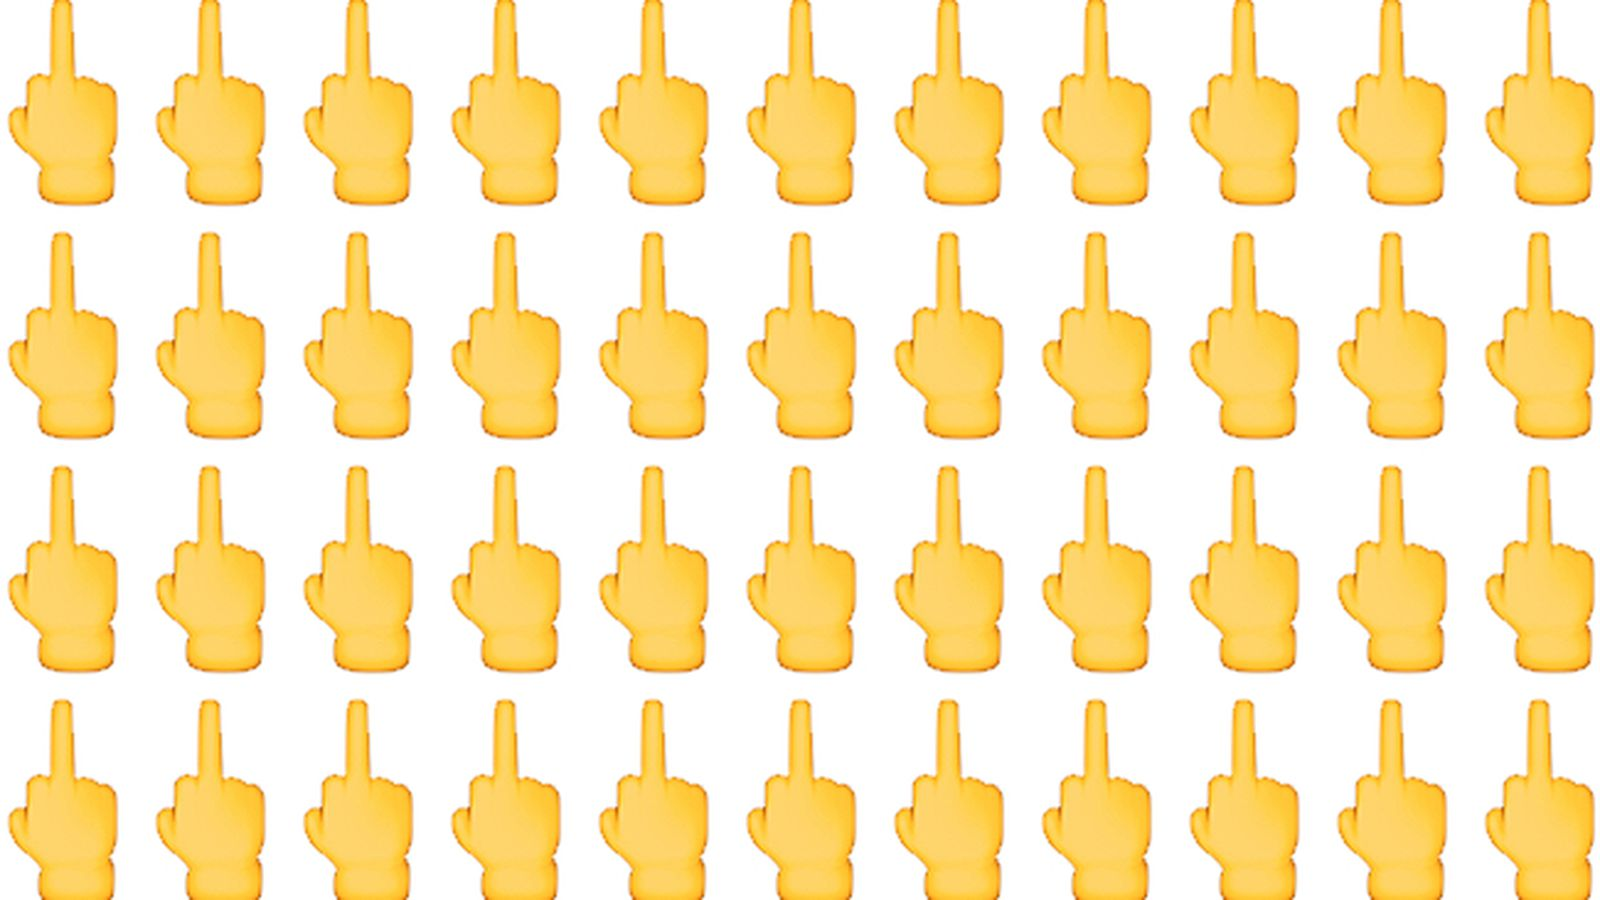 Ios 91 Will Let You Send People The Middle Finger Emoji The Verge